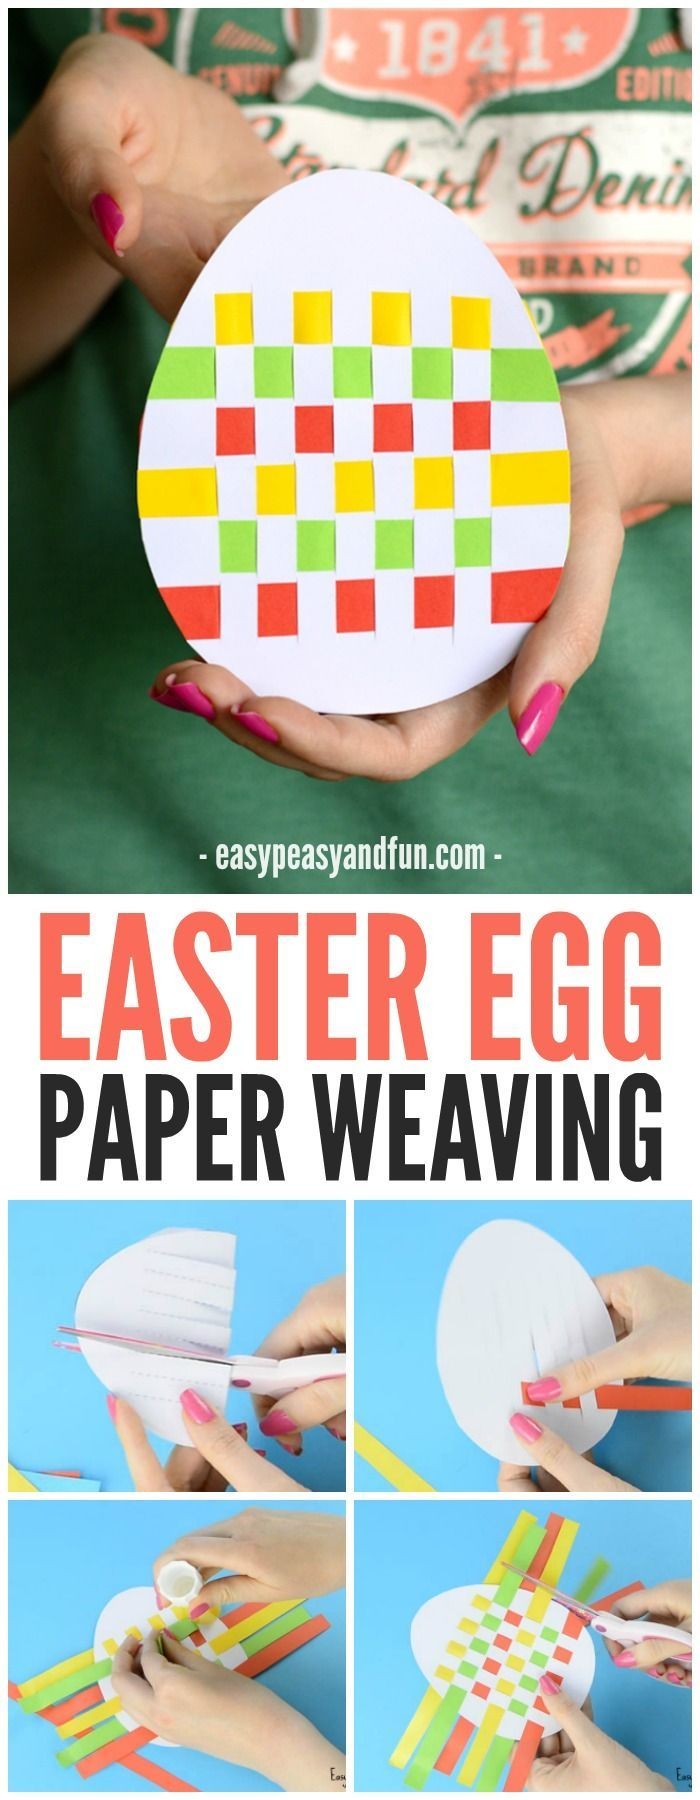 Easter Egg Paper Weaving! A great fine motor activity for children this spring!